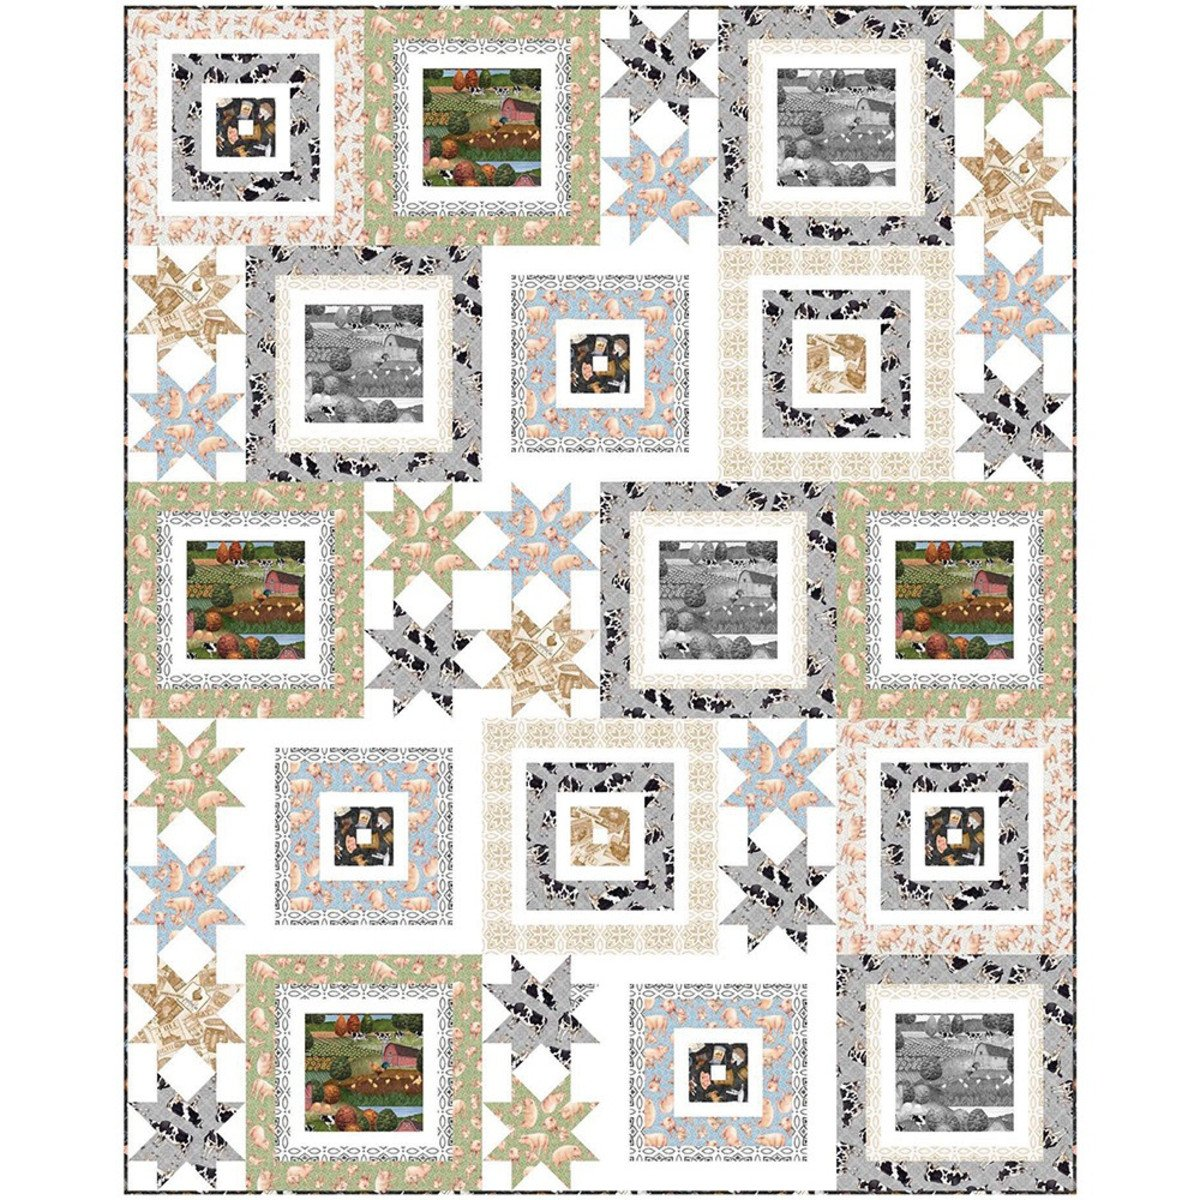 Greener Pasture fabric quilt kit by Wendy Sheppard for QT Fabrics KIT 3970B